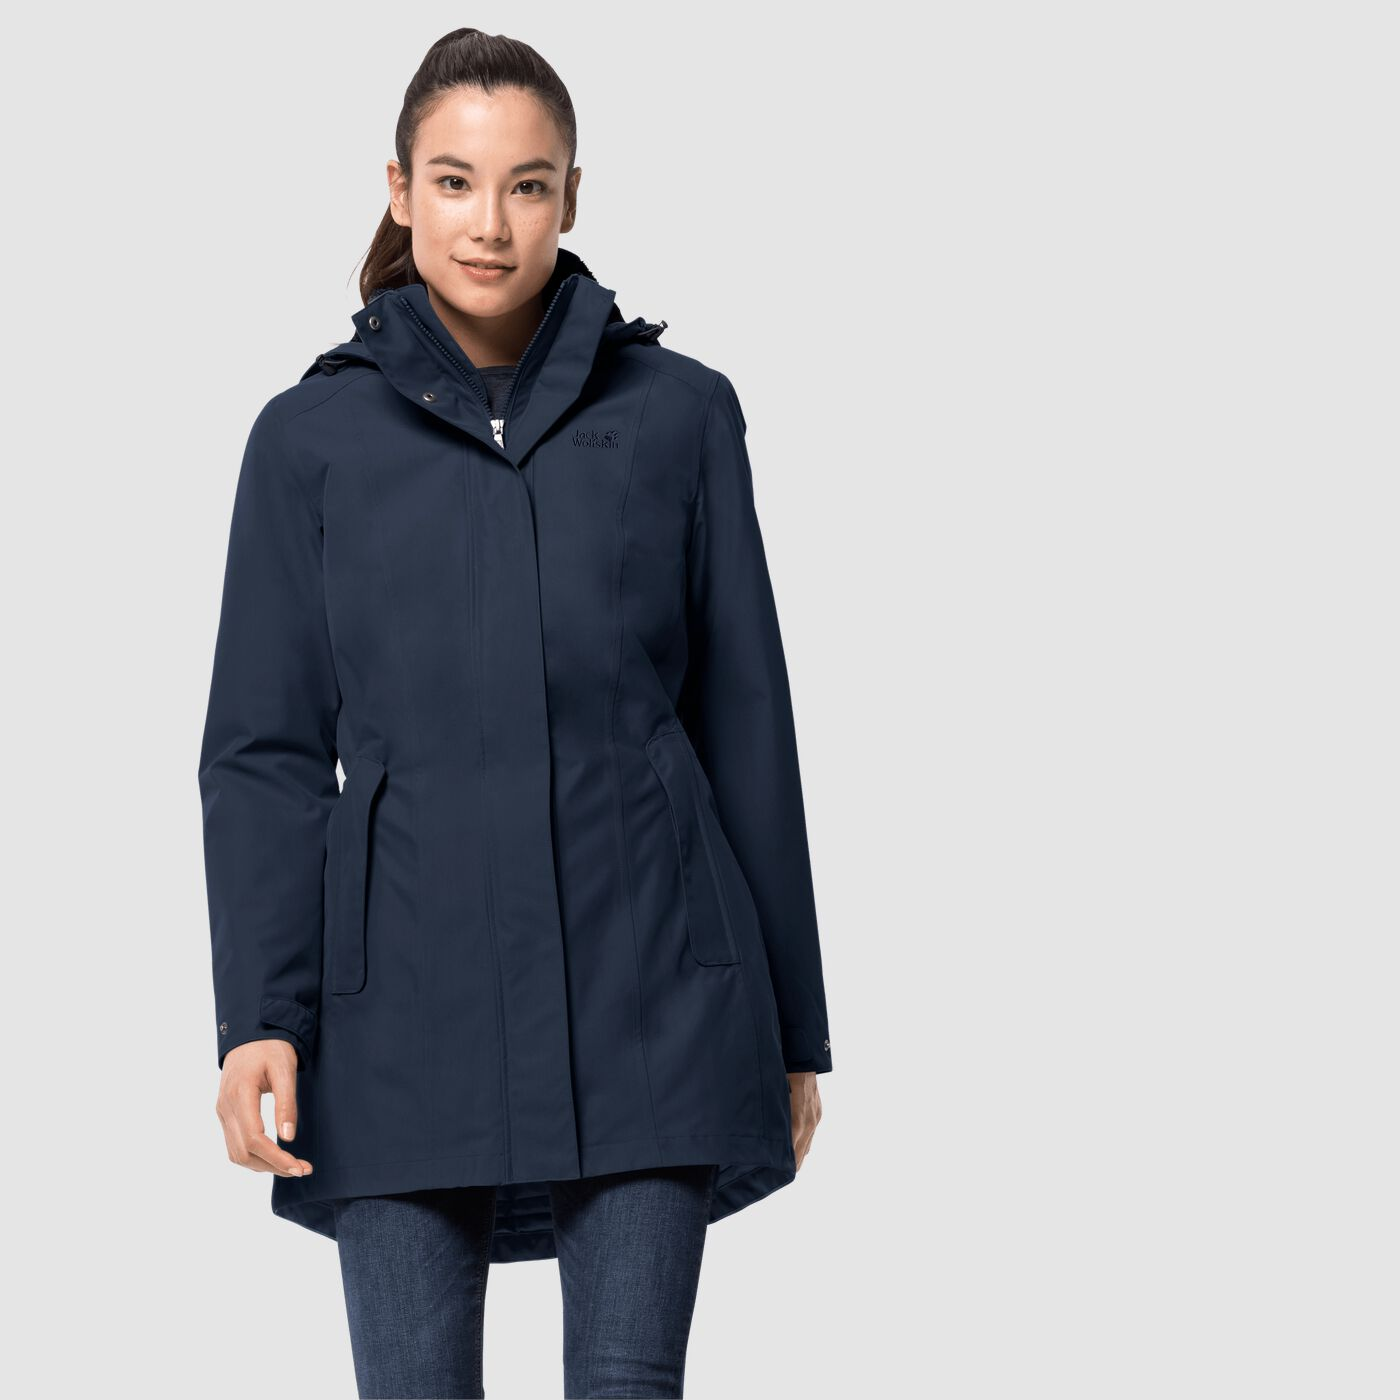 MADISON AVENUE COAT